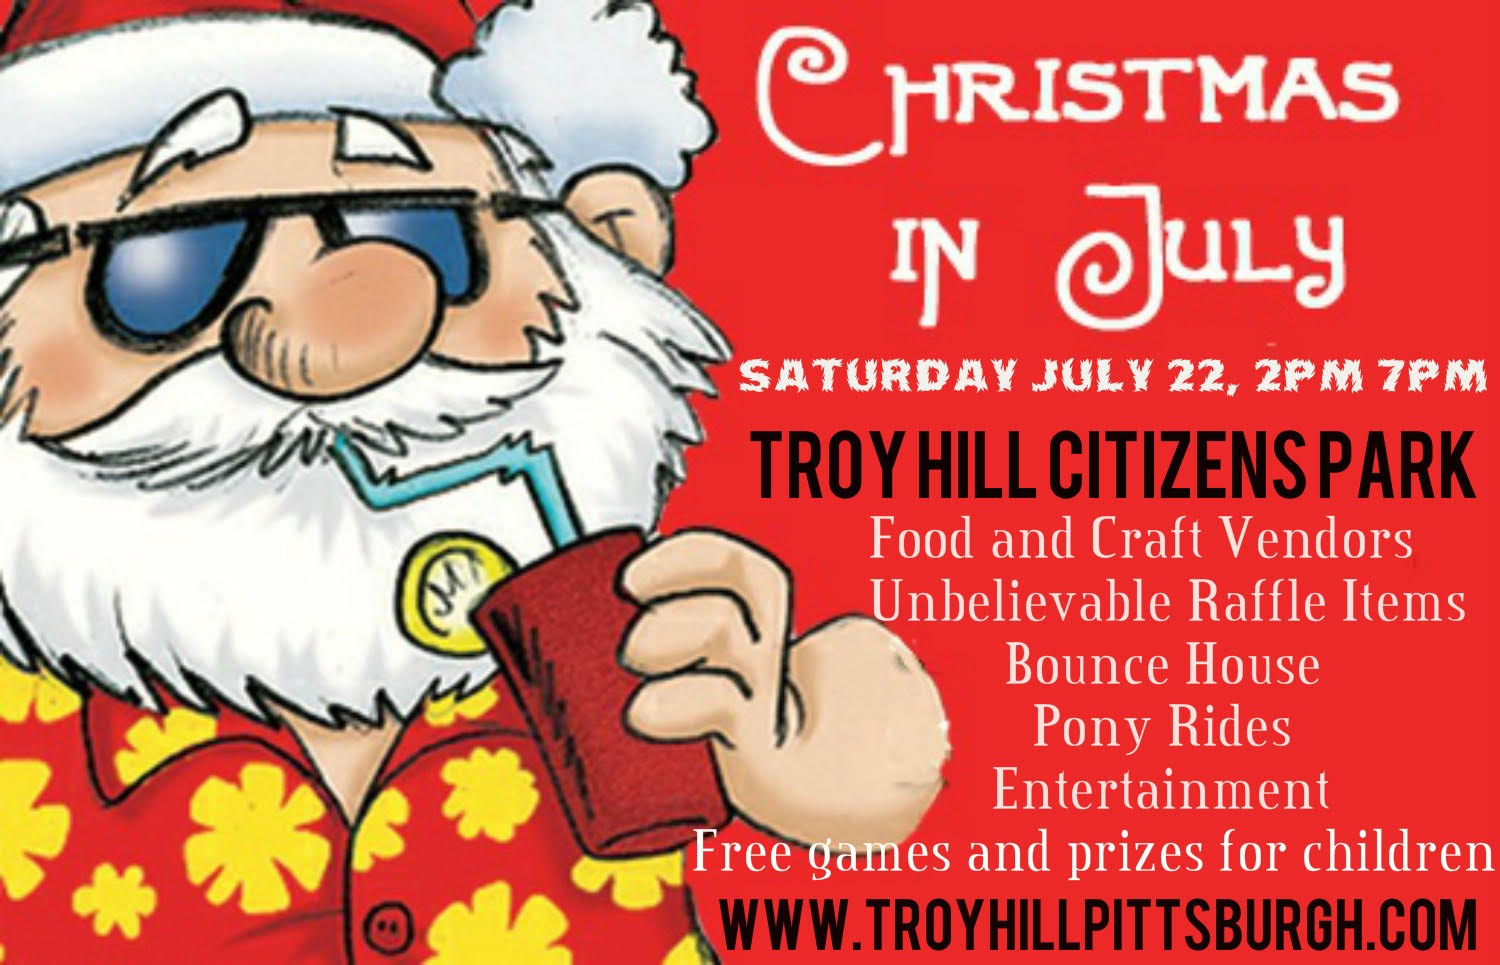 Christmas In July 2017 Flyer